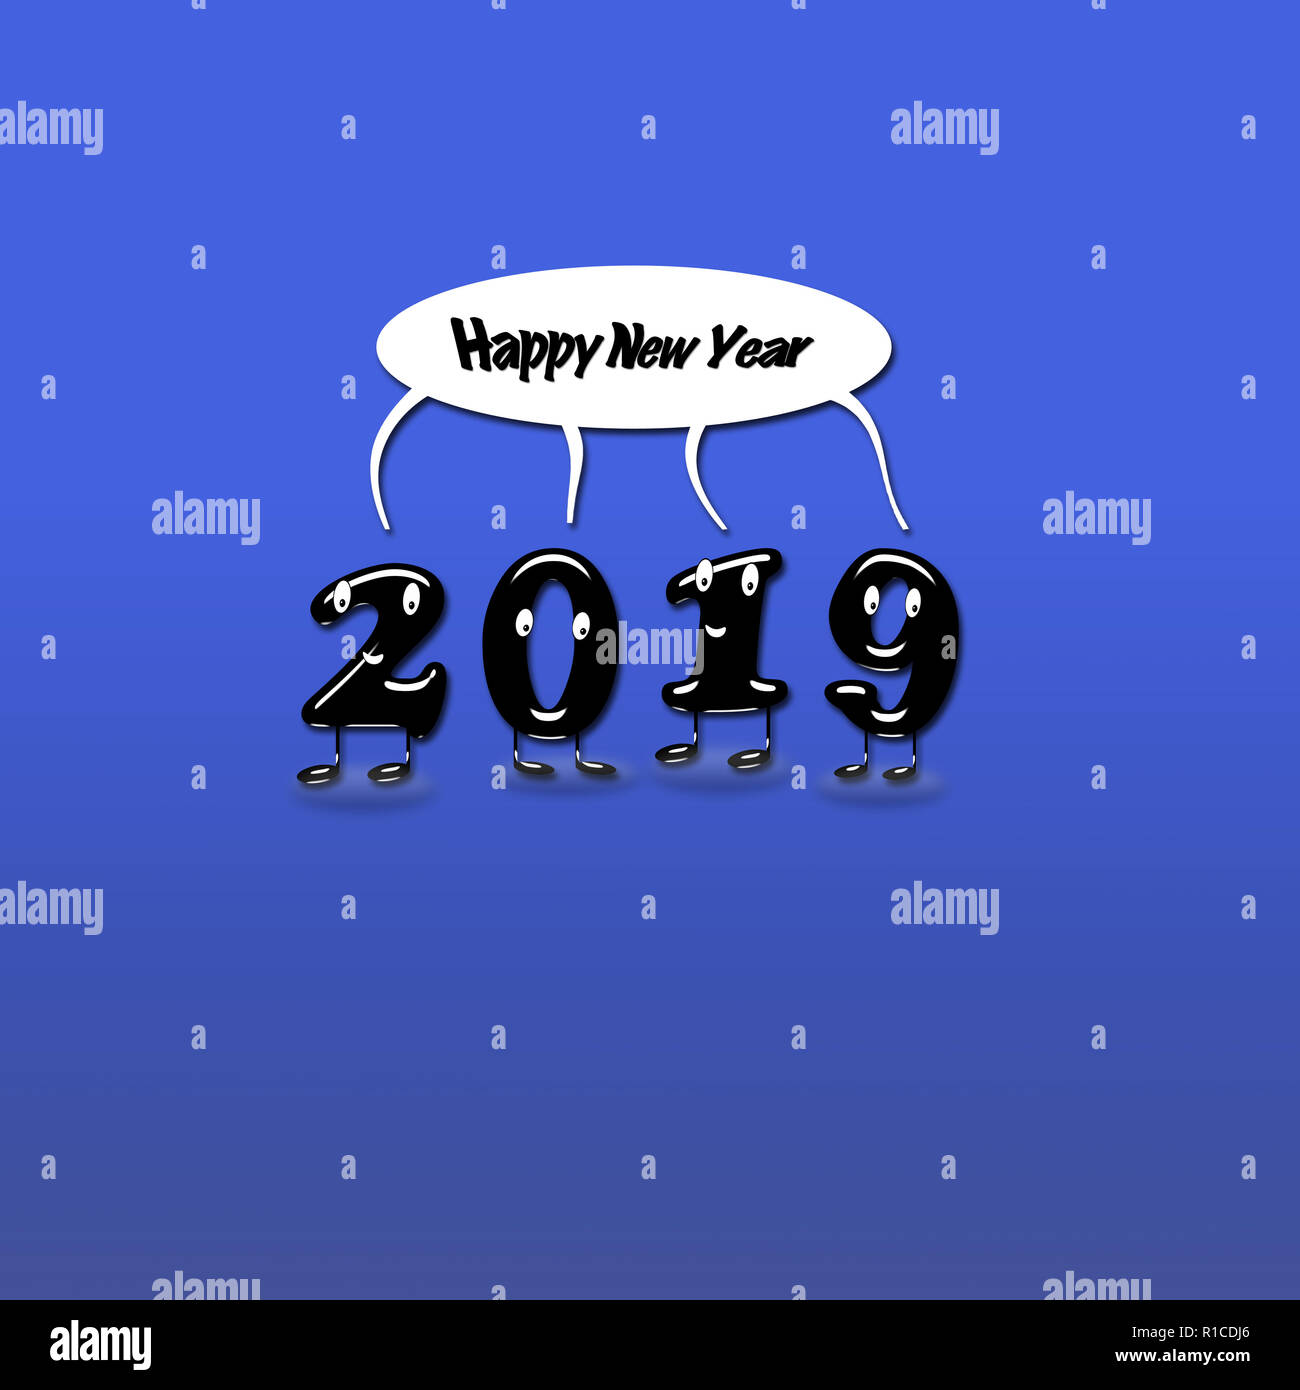 cartoon of 2019 numerals with speech bubble with text happy new year on blue background 3d rendering